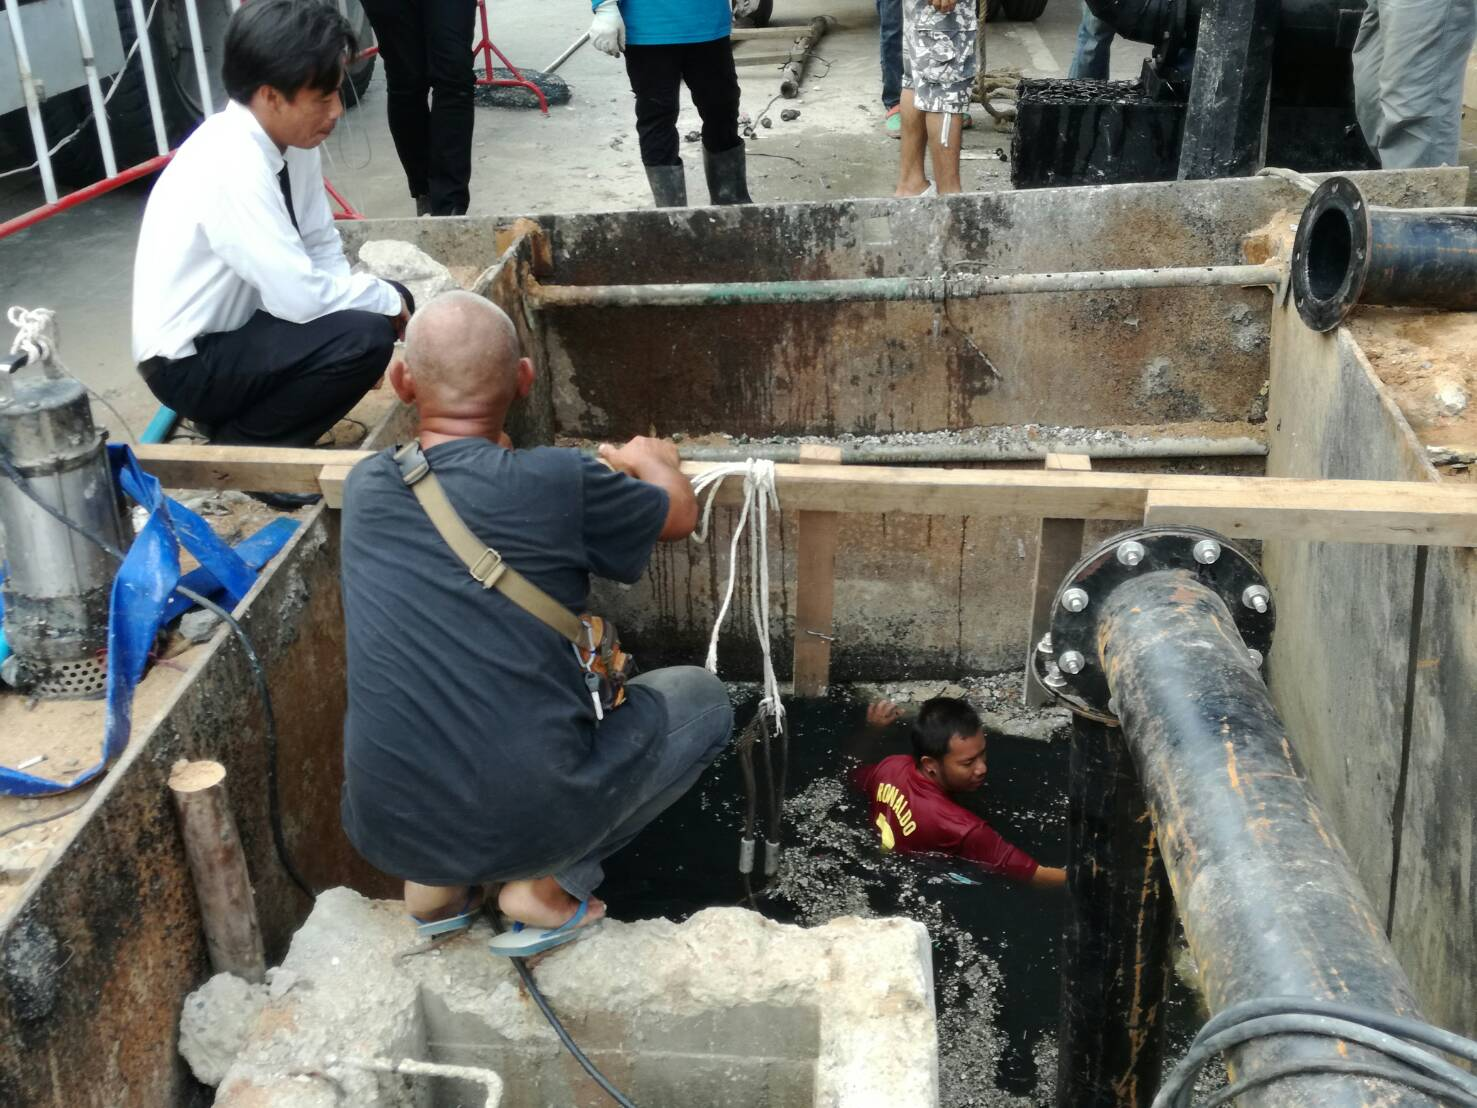 Pattaya city workers were called in to complete a badly delayed sewage pipeline project in Jomtien Beach that has residents up in arms.